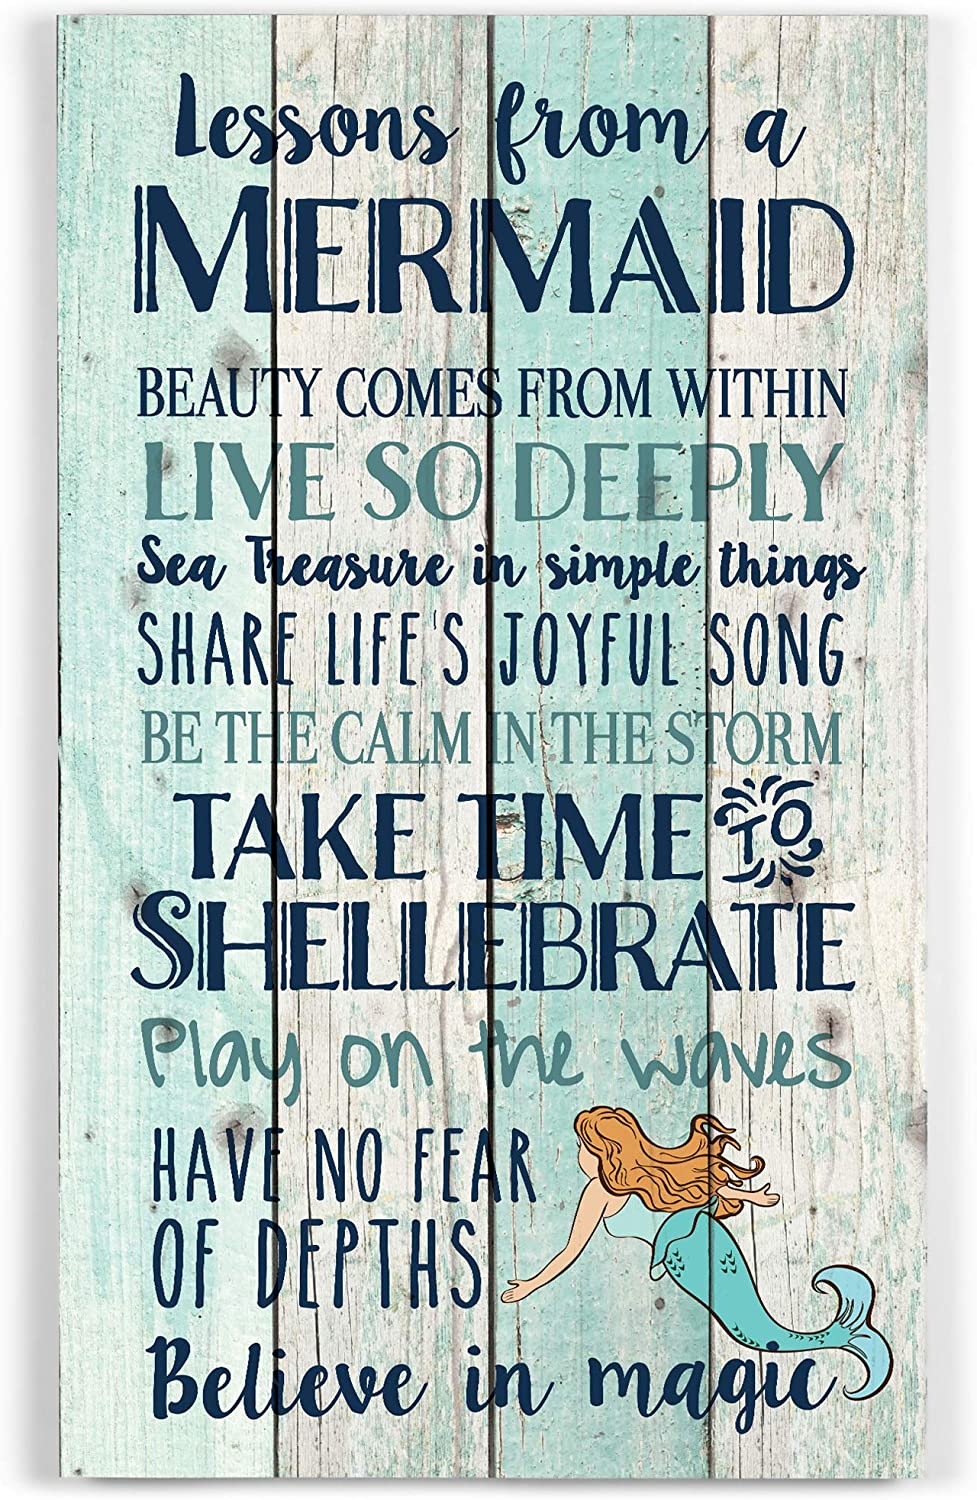 P. Graham Dunn Advice from a Mermaid Believe in Magic 24 x 14 Wood Pallet Wall Art Sign Plaque